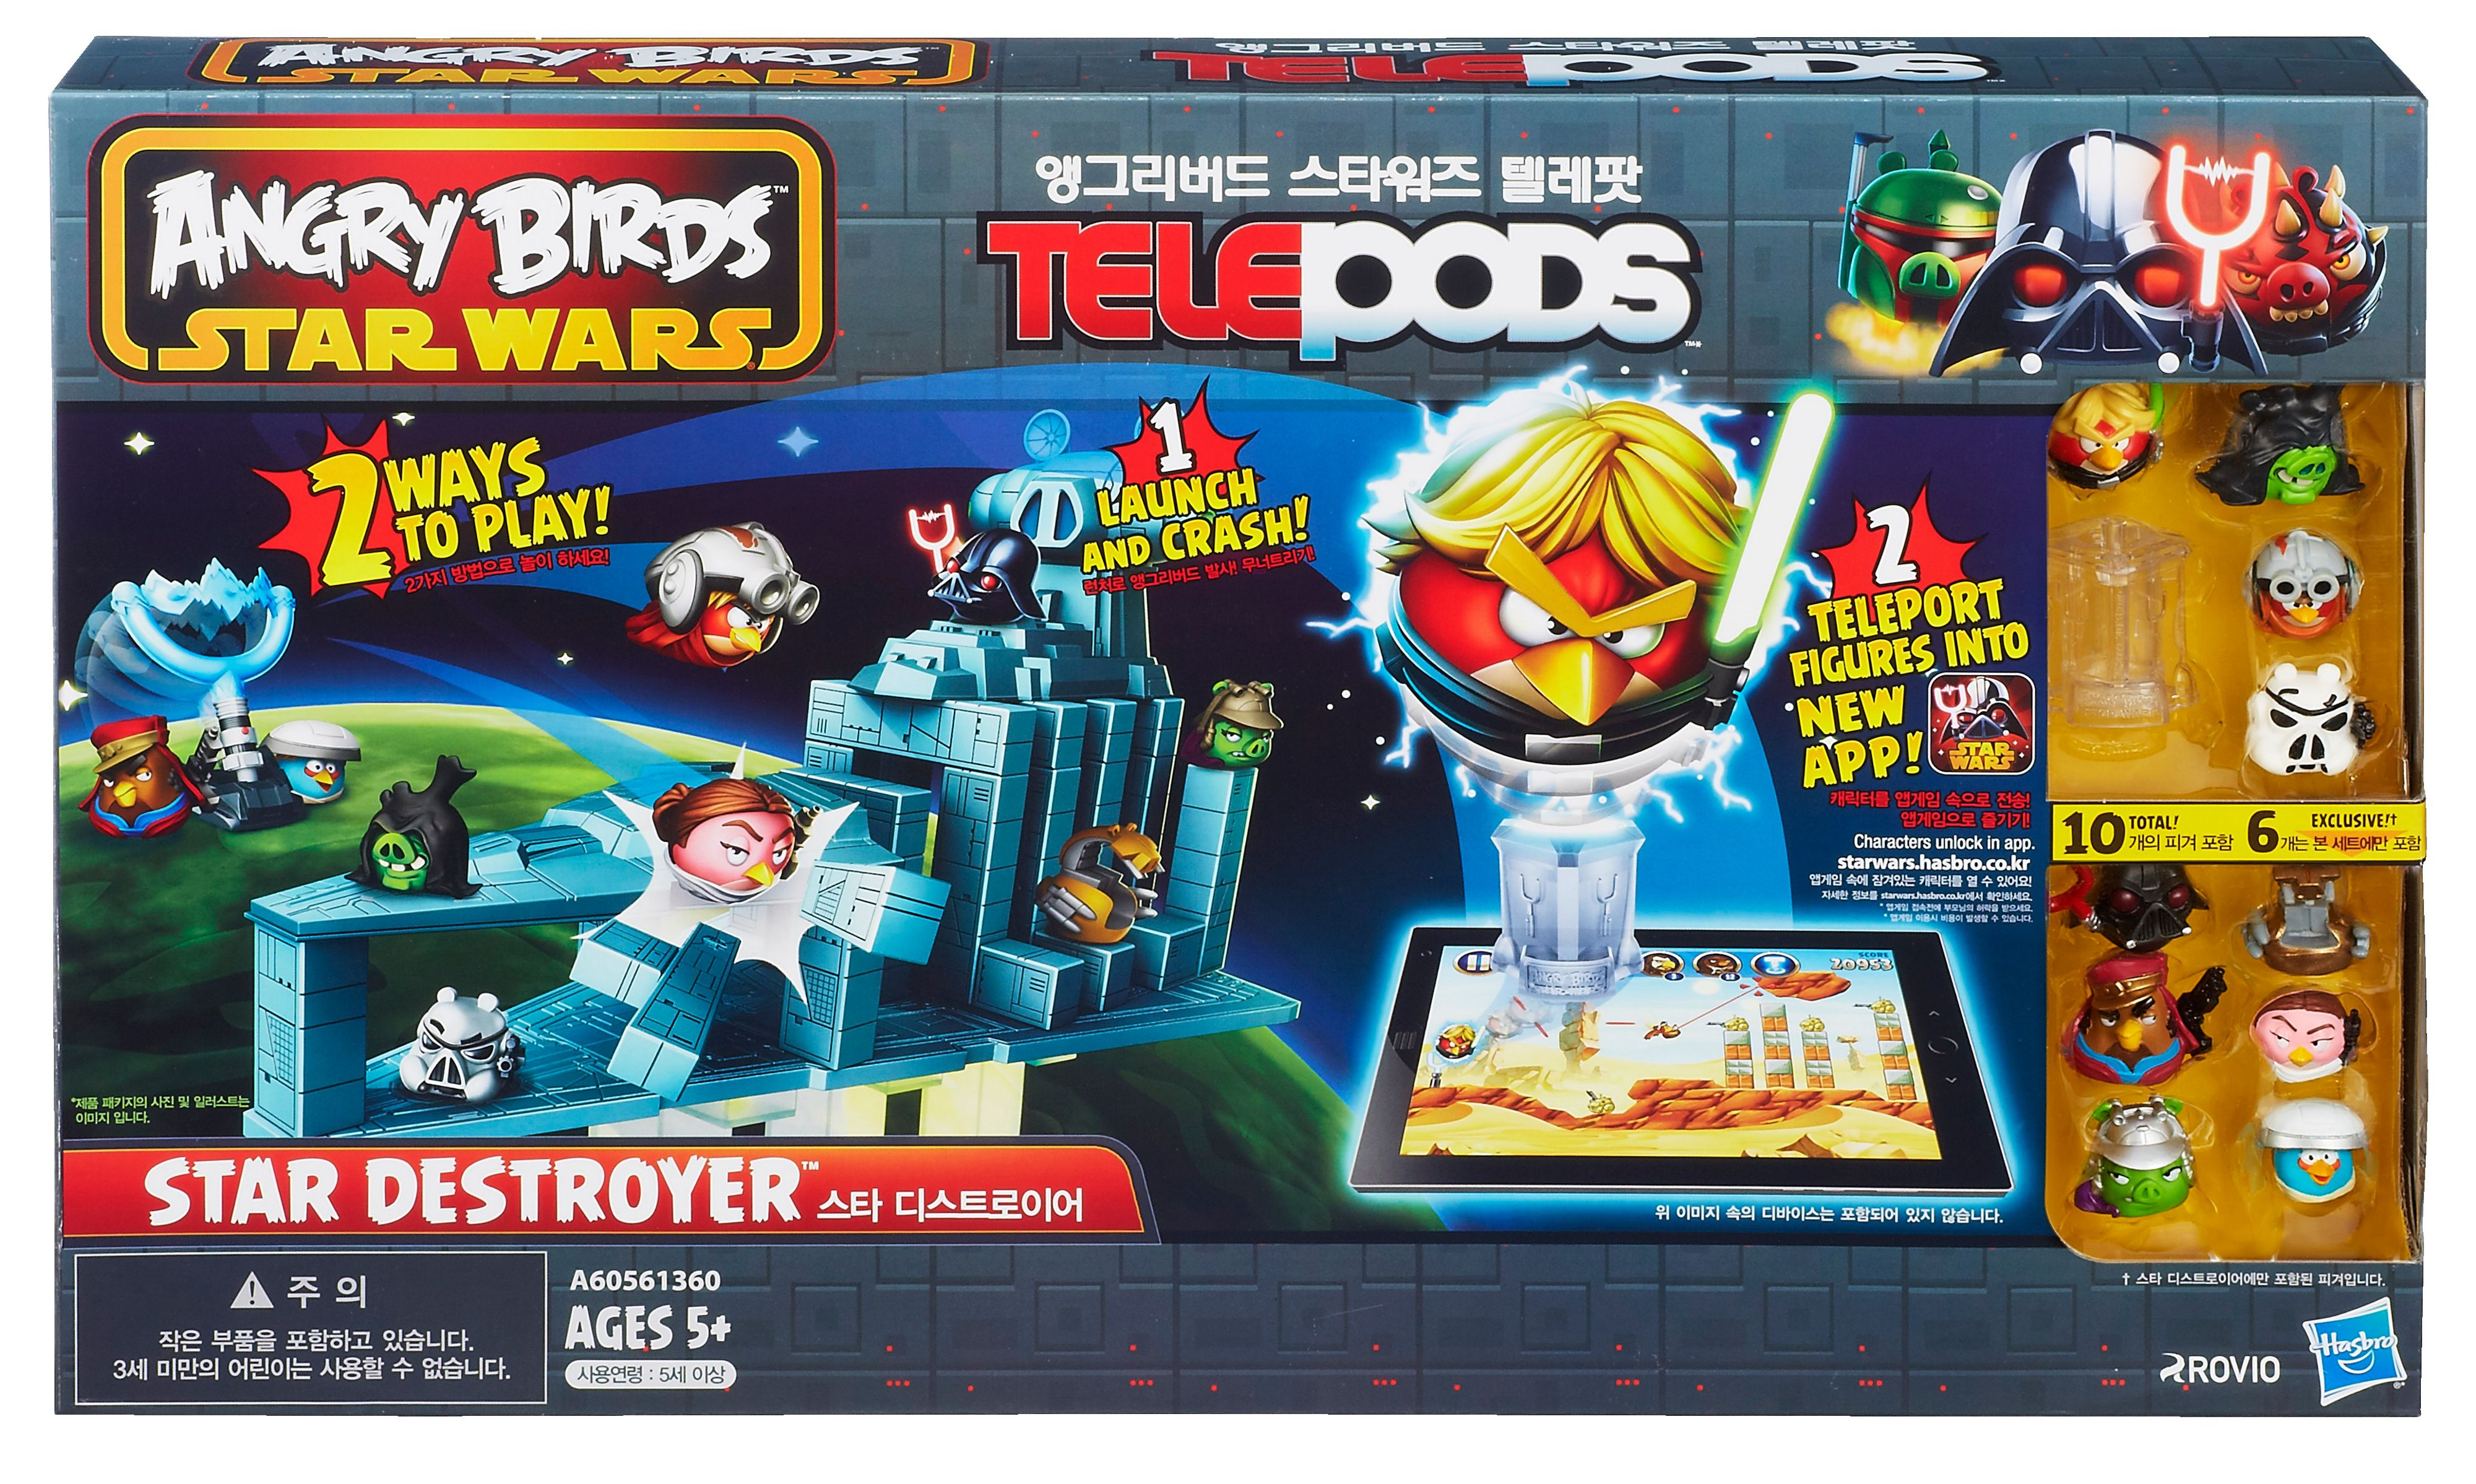 Star wars Angry Birds Star Destroyer